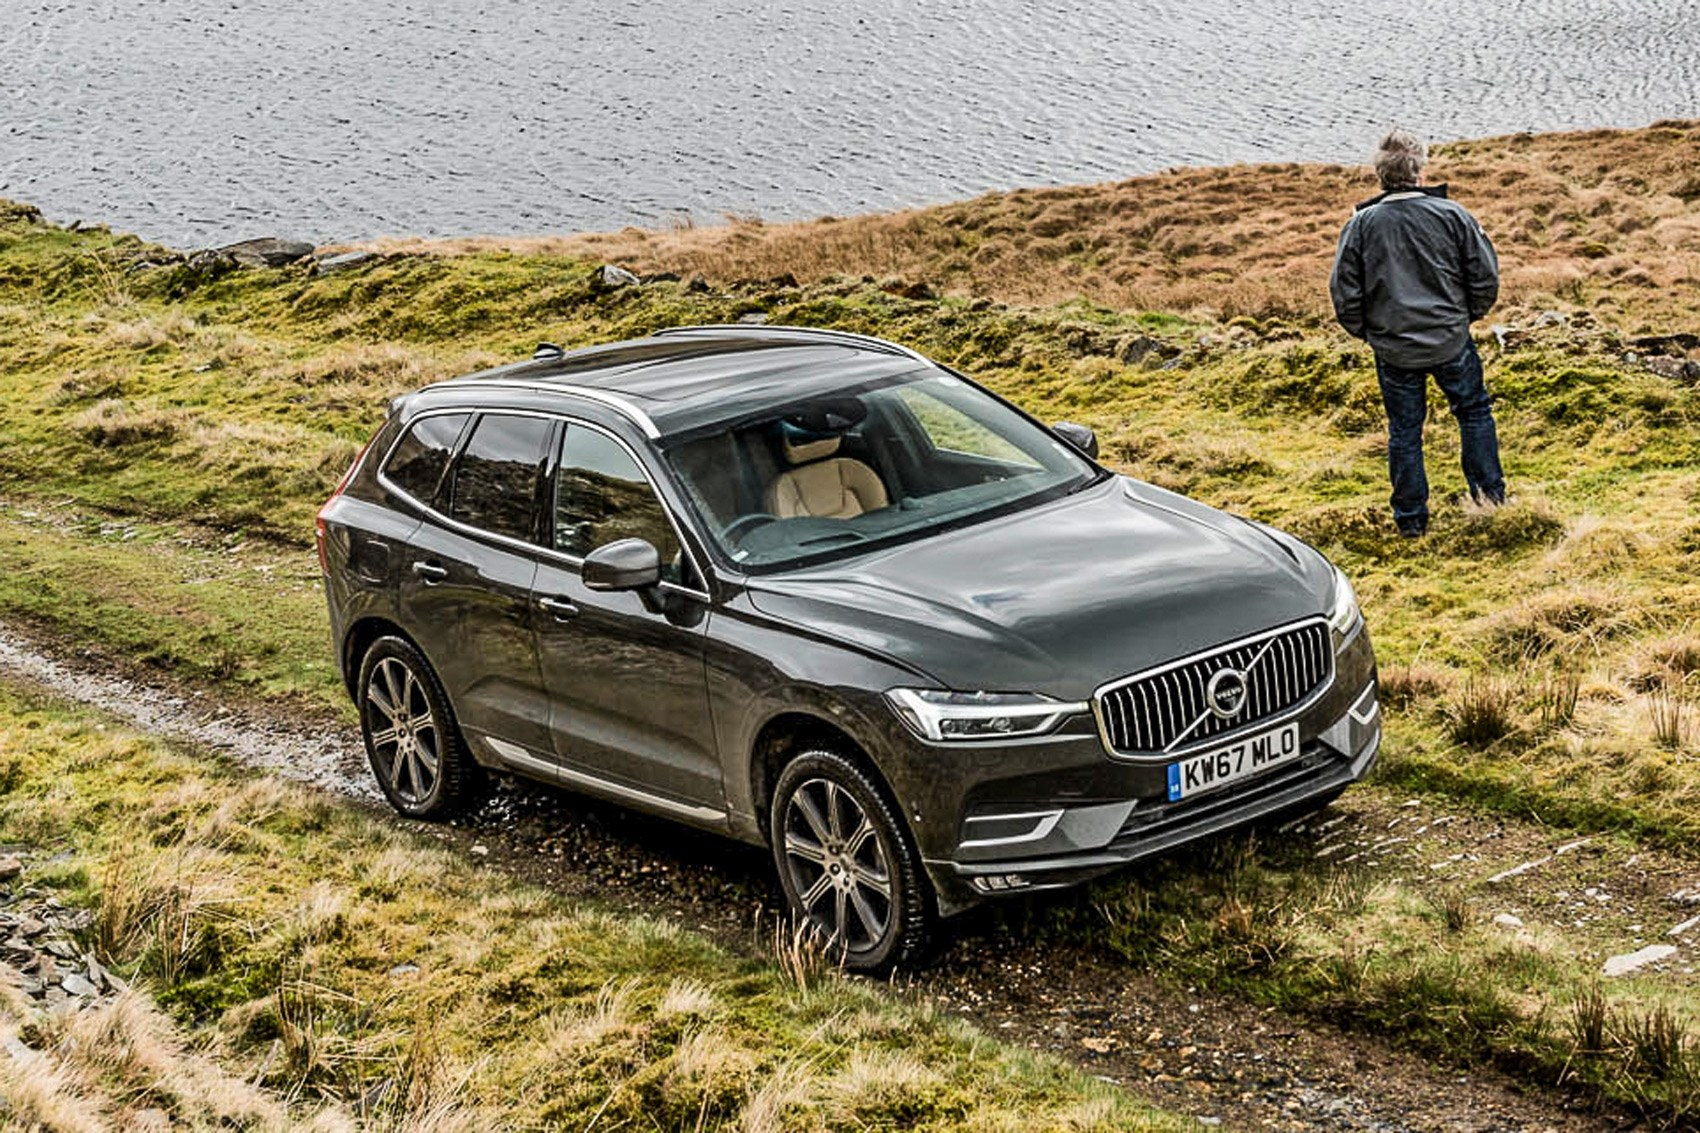 2019 Volvo XC60: Changes, Design, Price >> Volvo Xc60 D4 Inscription 2019 Long Term Test Review Car